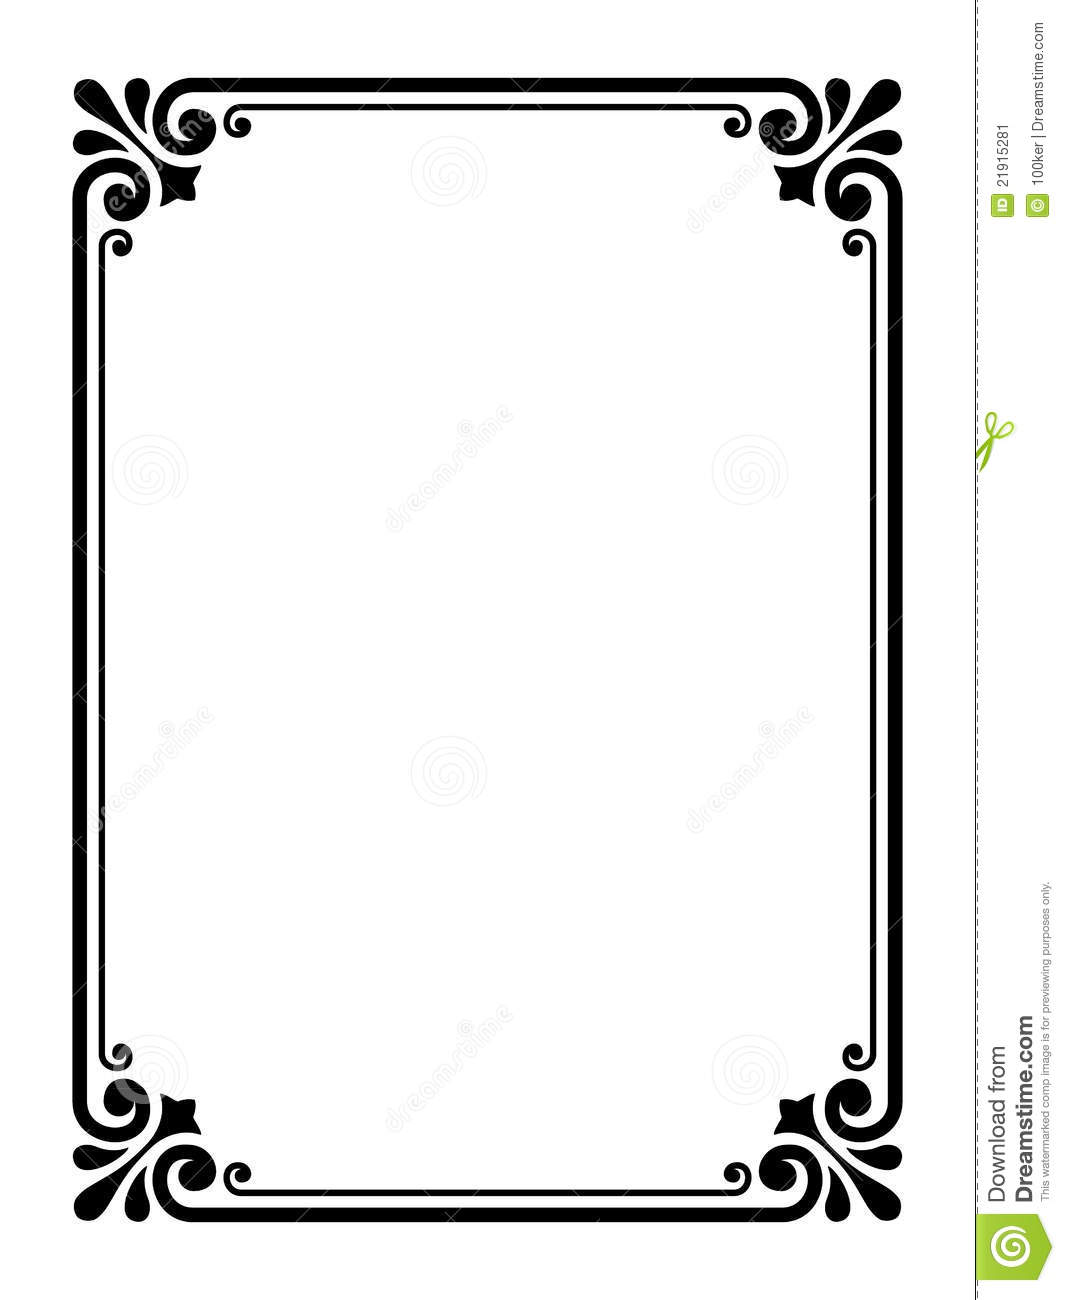 1065x1300 Simple Page Border Designs To Draw Collection 52